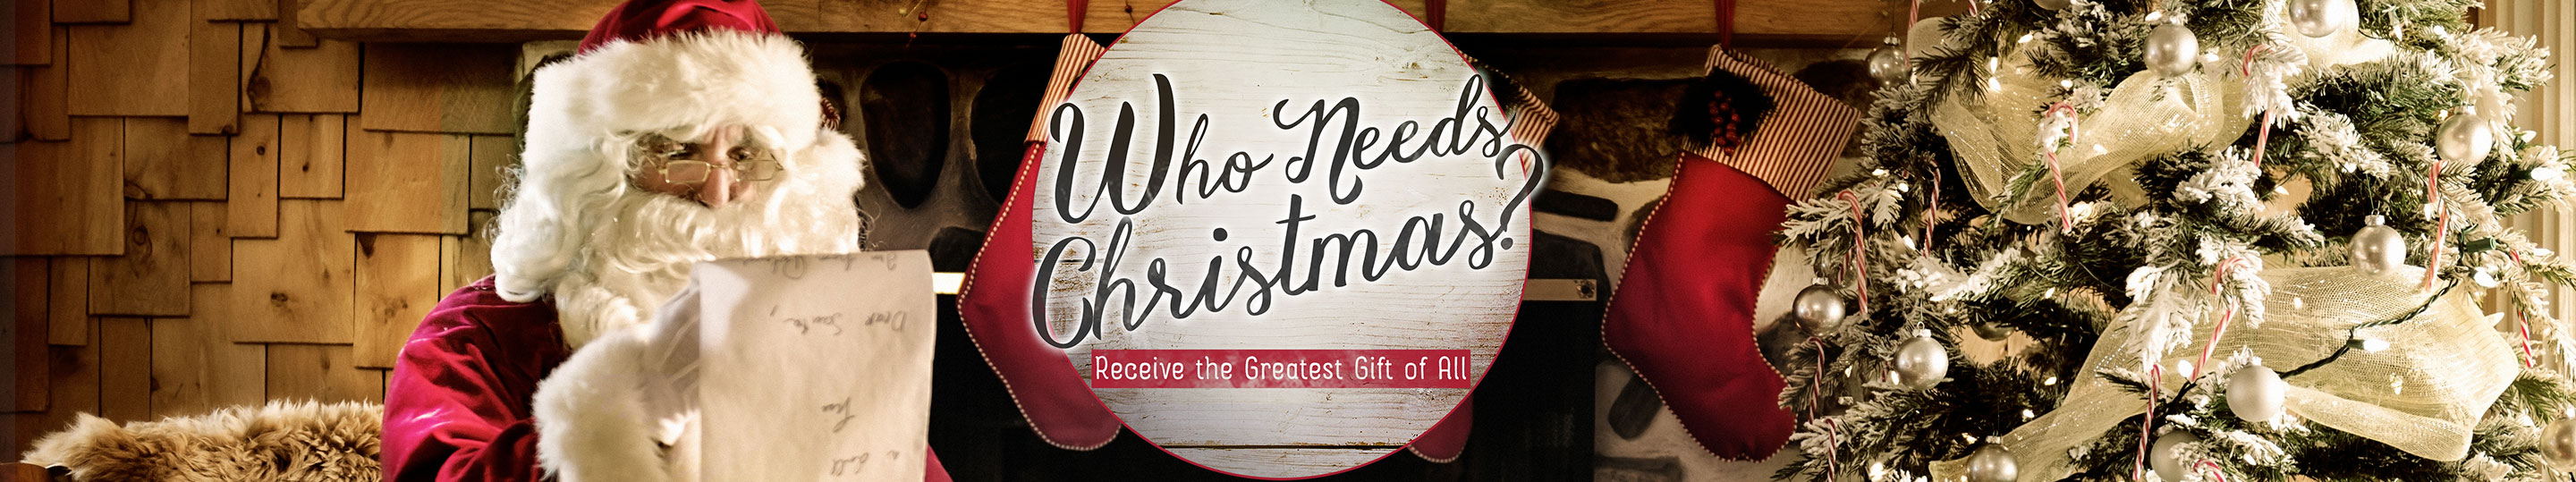 Who Needs Christmas: You and Me banner